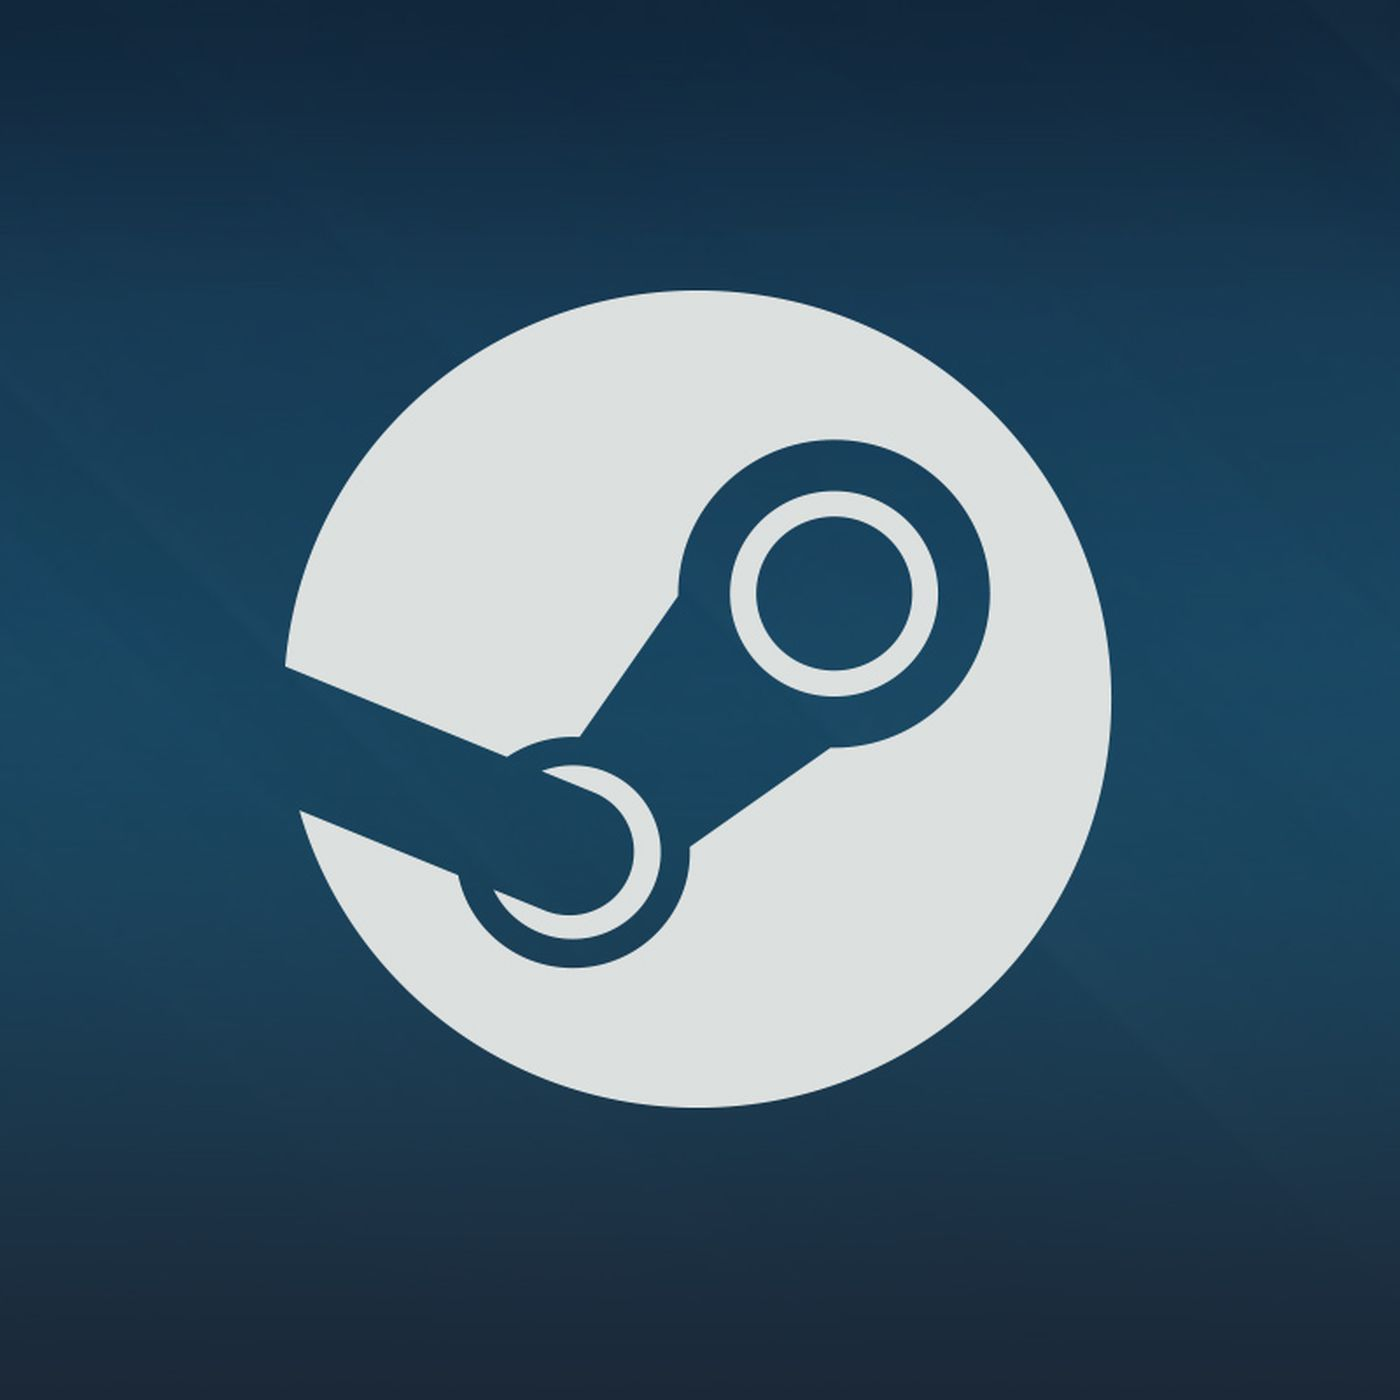 Steam game pulled from store after allegations of cryptocurrency